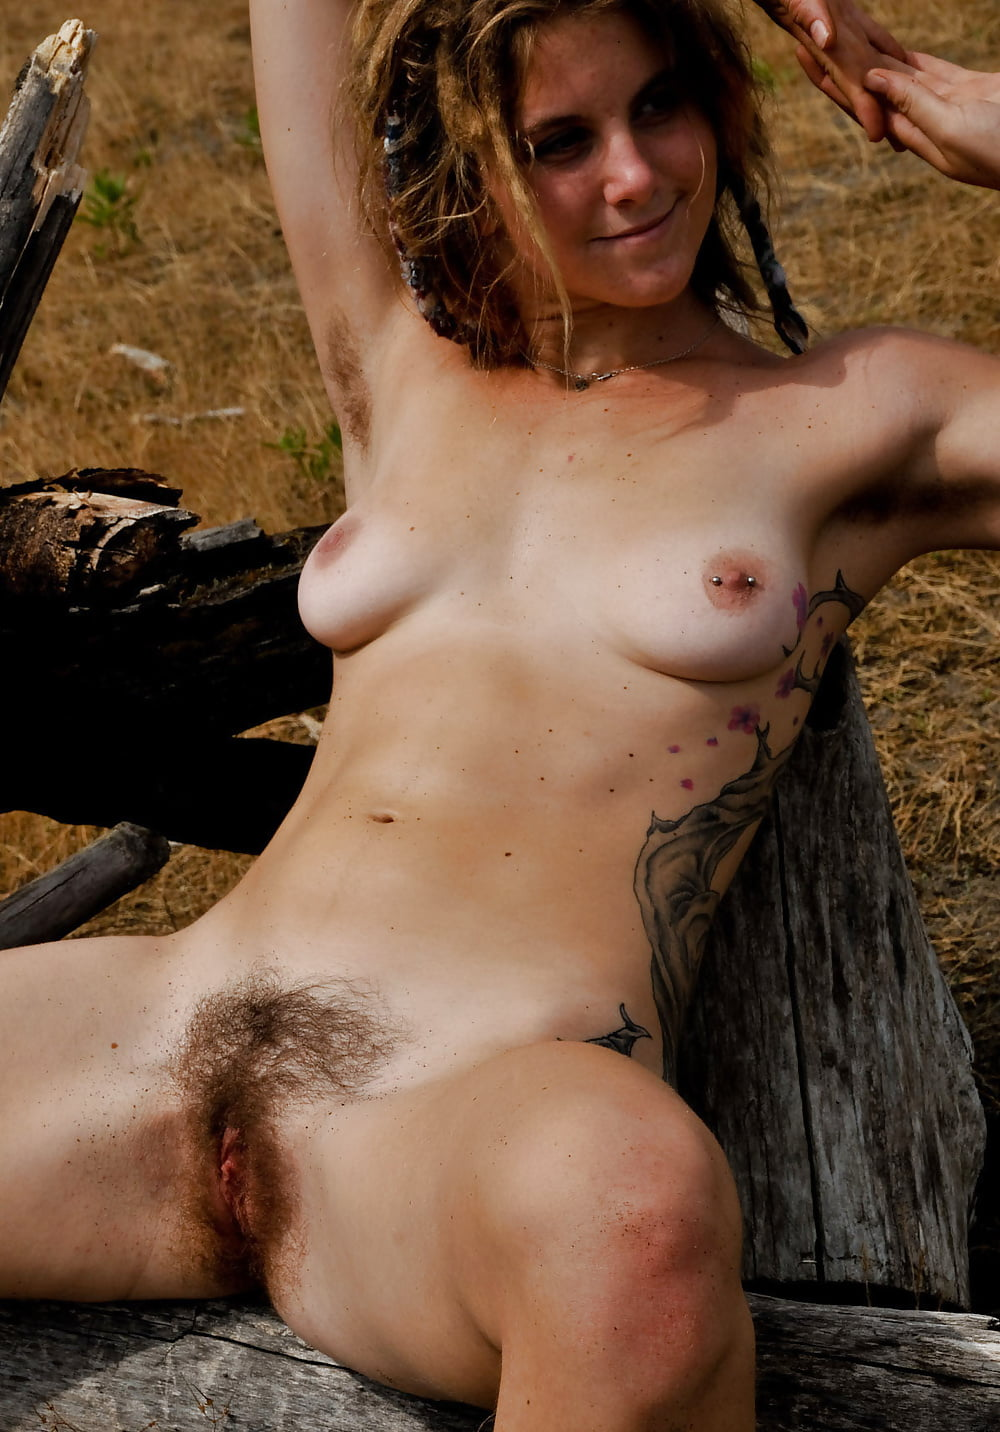 Unshaved Twat And Hairy Legs Hippy Girl